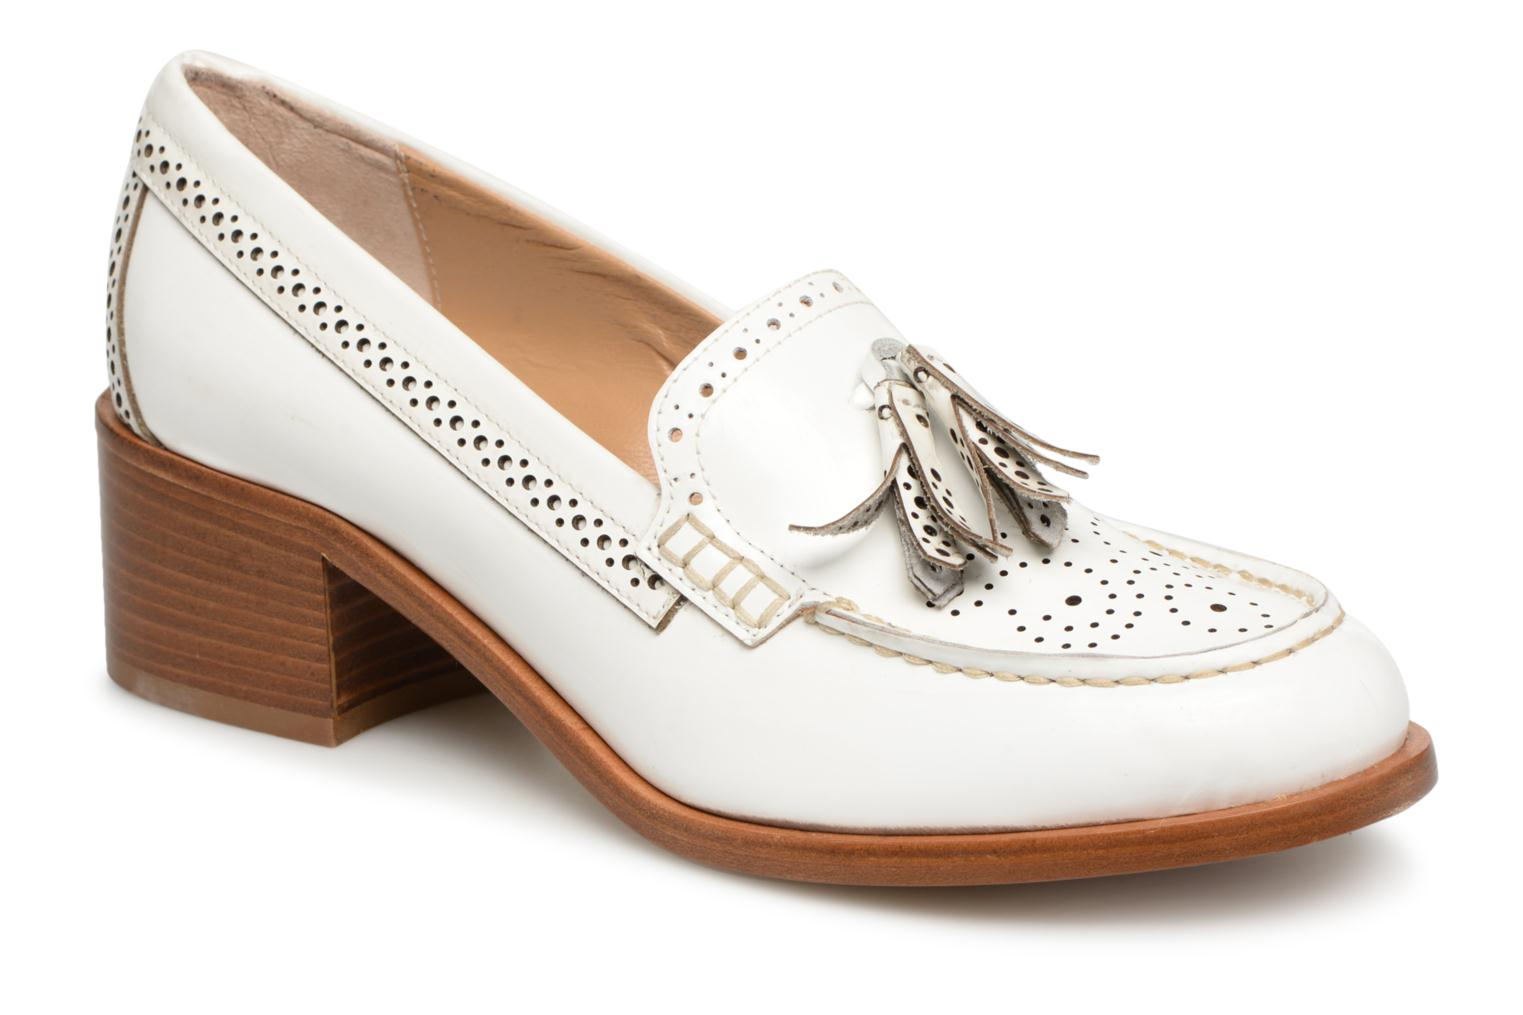 G.H. Bass BA41519 Loafers (White) - Loafers BA41519 chez (340212) e73d73